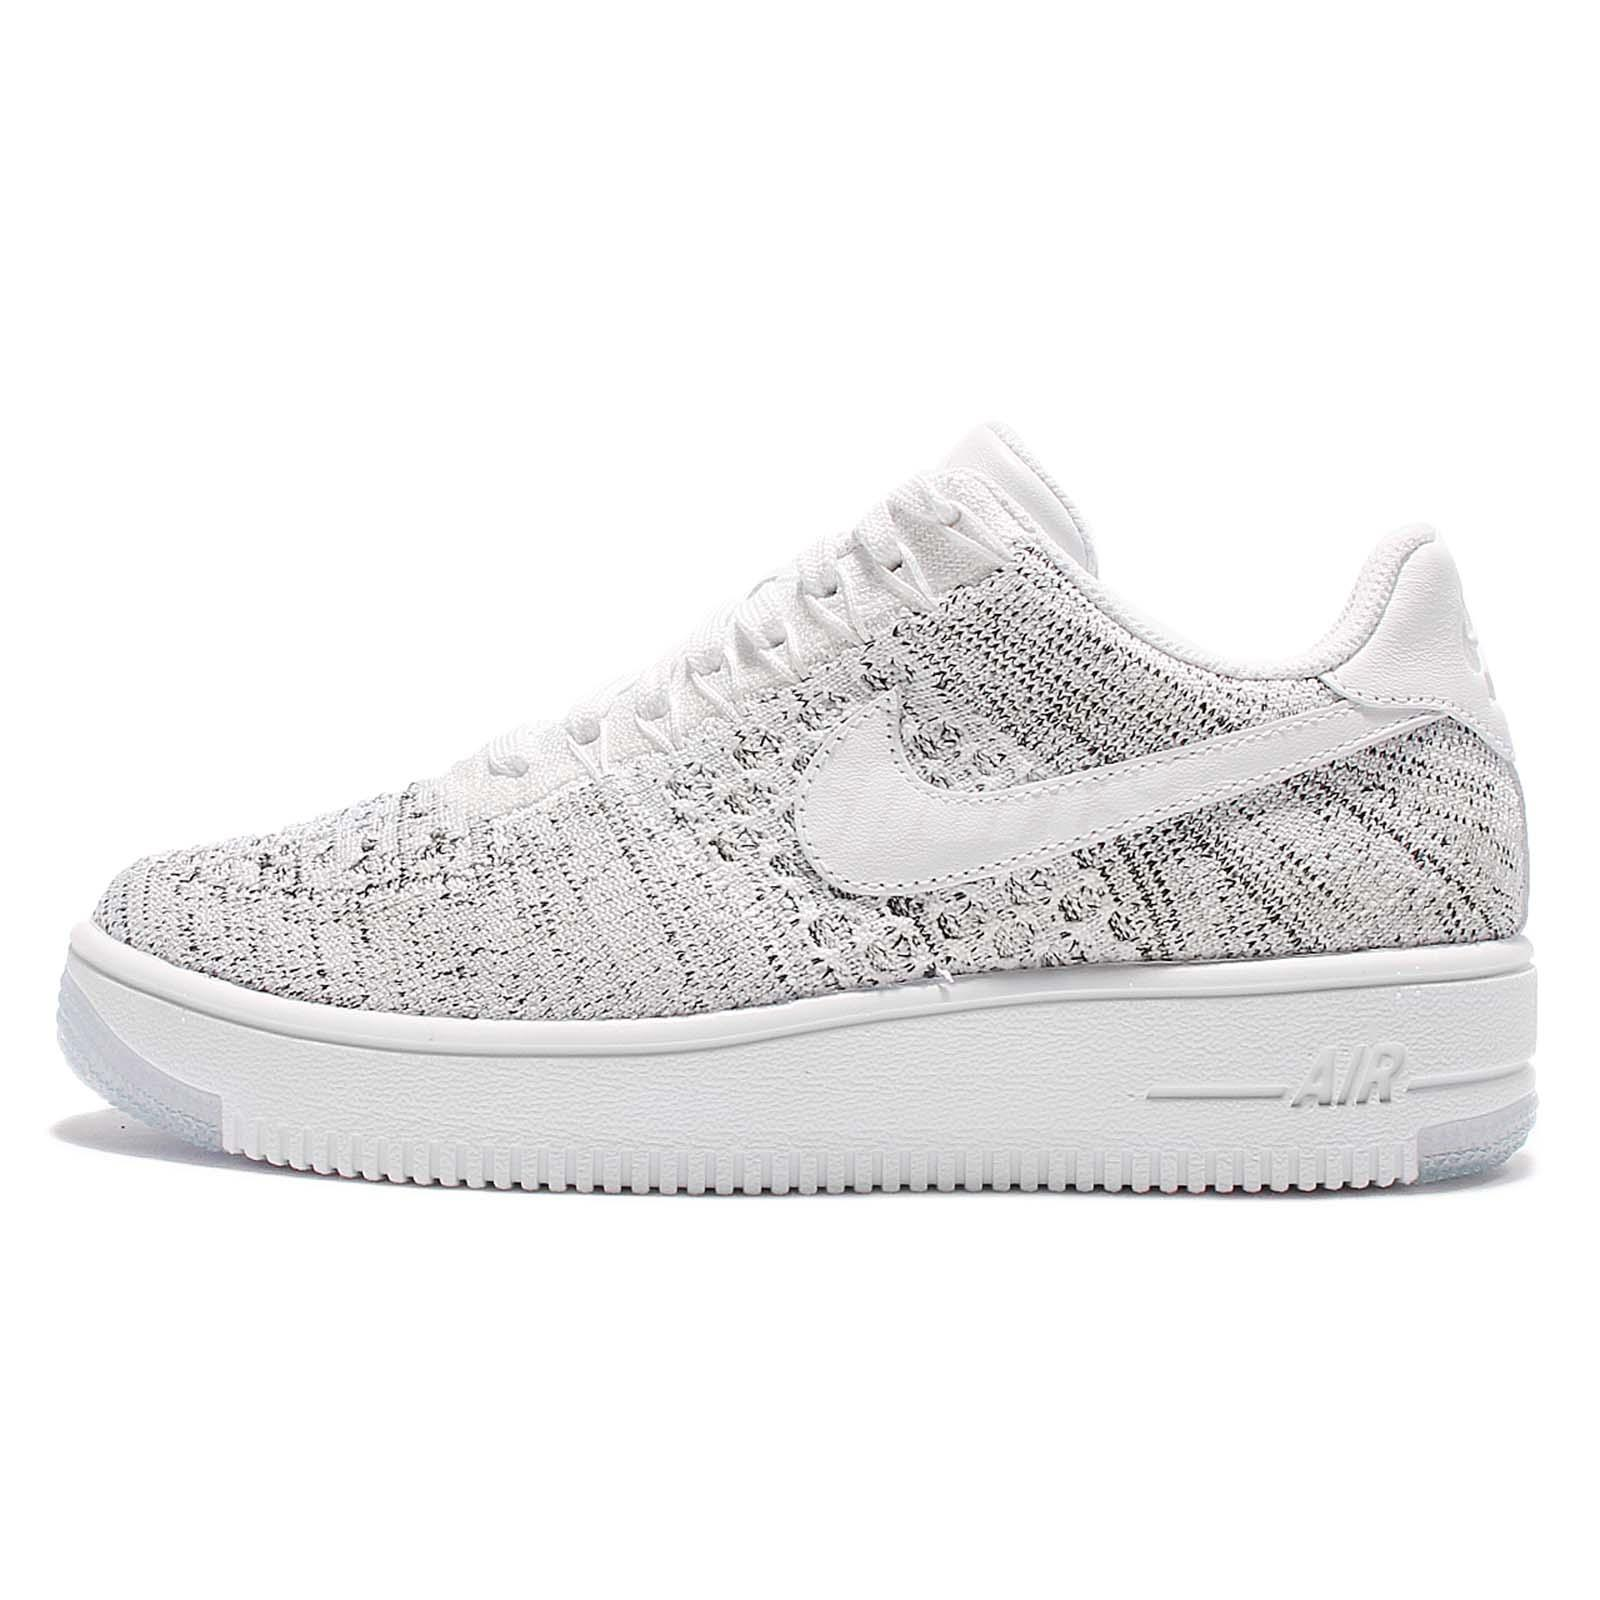 c1af08d4479f Wmns Nike AF1 Flyknit Low Air Force 1 Womens Shoes Sneakers Pick 1